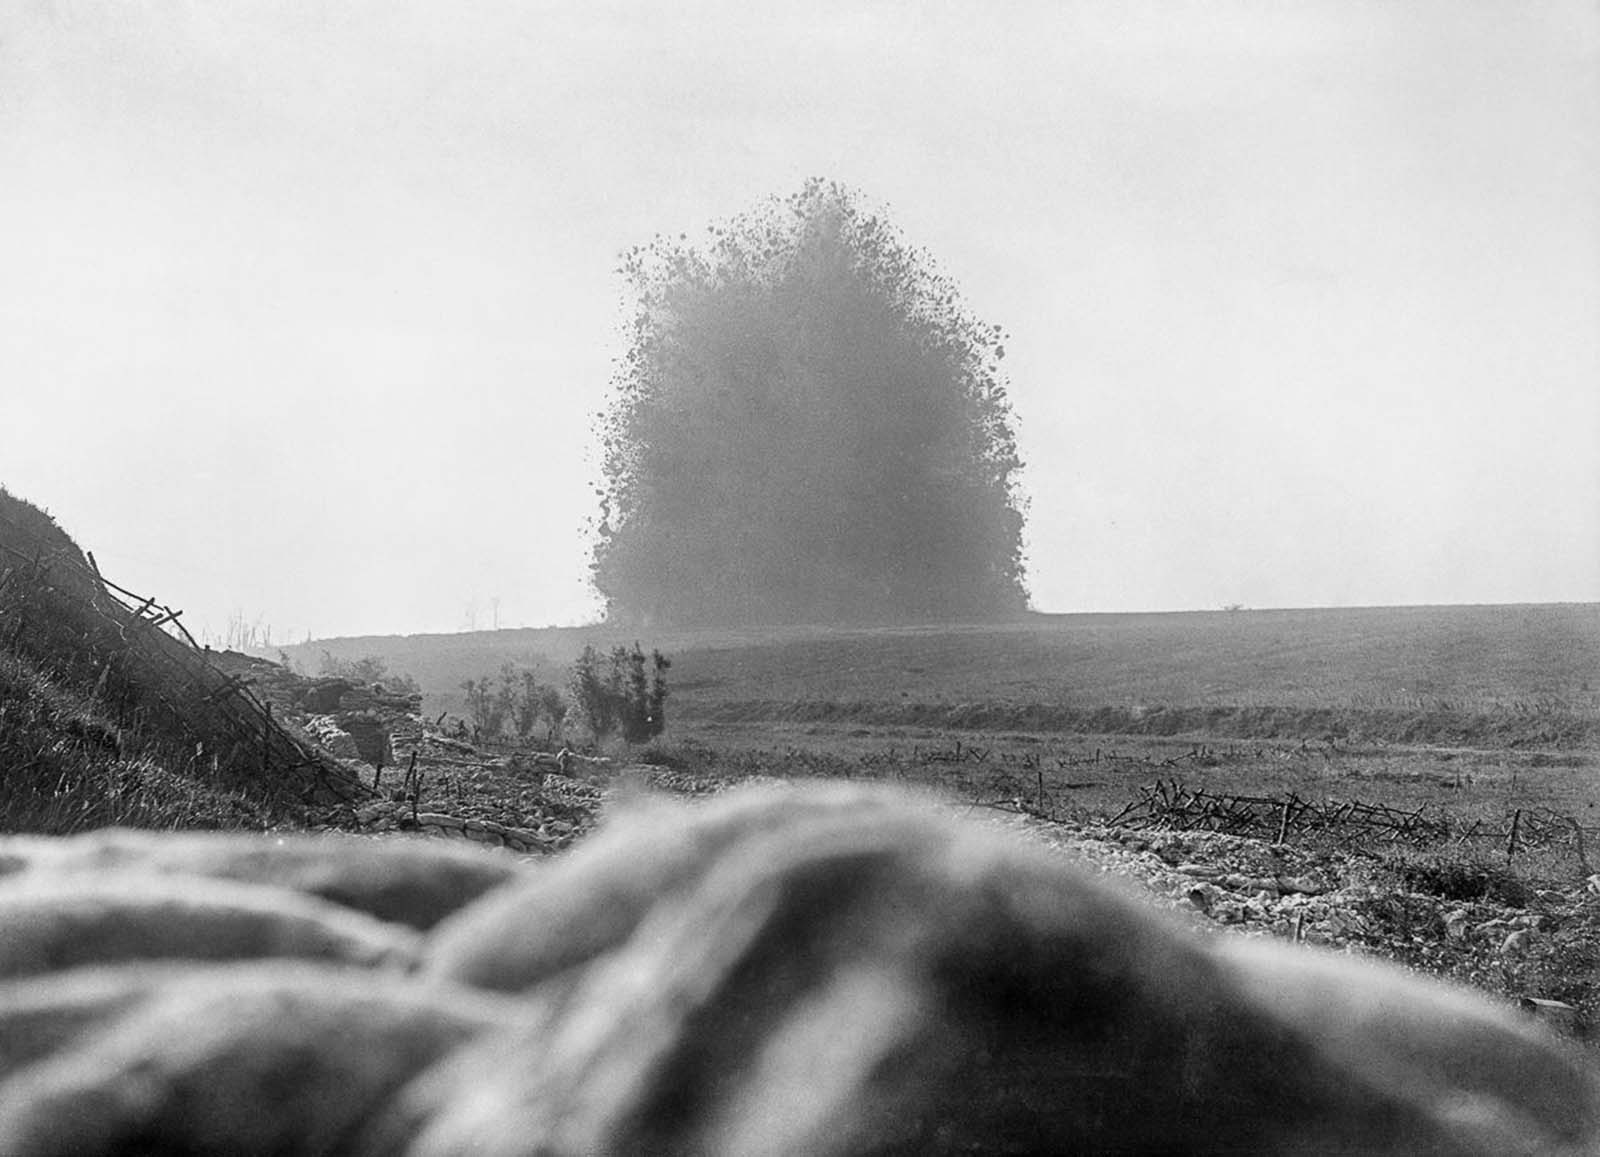 A 45,000-pound mine (2 ton) under the German front line positions at Hawthorn Redoubt is fired 10 minutes before the assault at Beaumont Hamel on the first day of the Battle of the Somme. The mine left a crater 130 feet (40 m) across and 58 feet (18 m) deep.